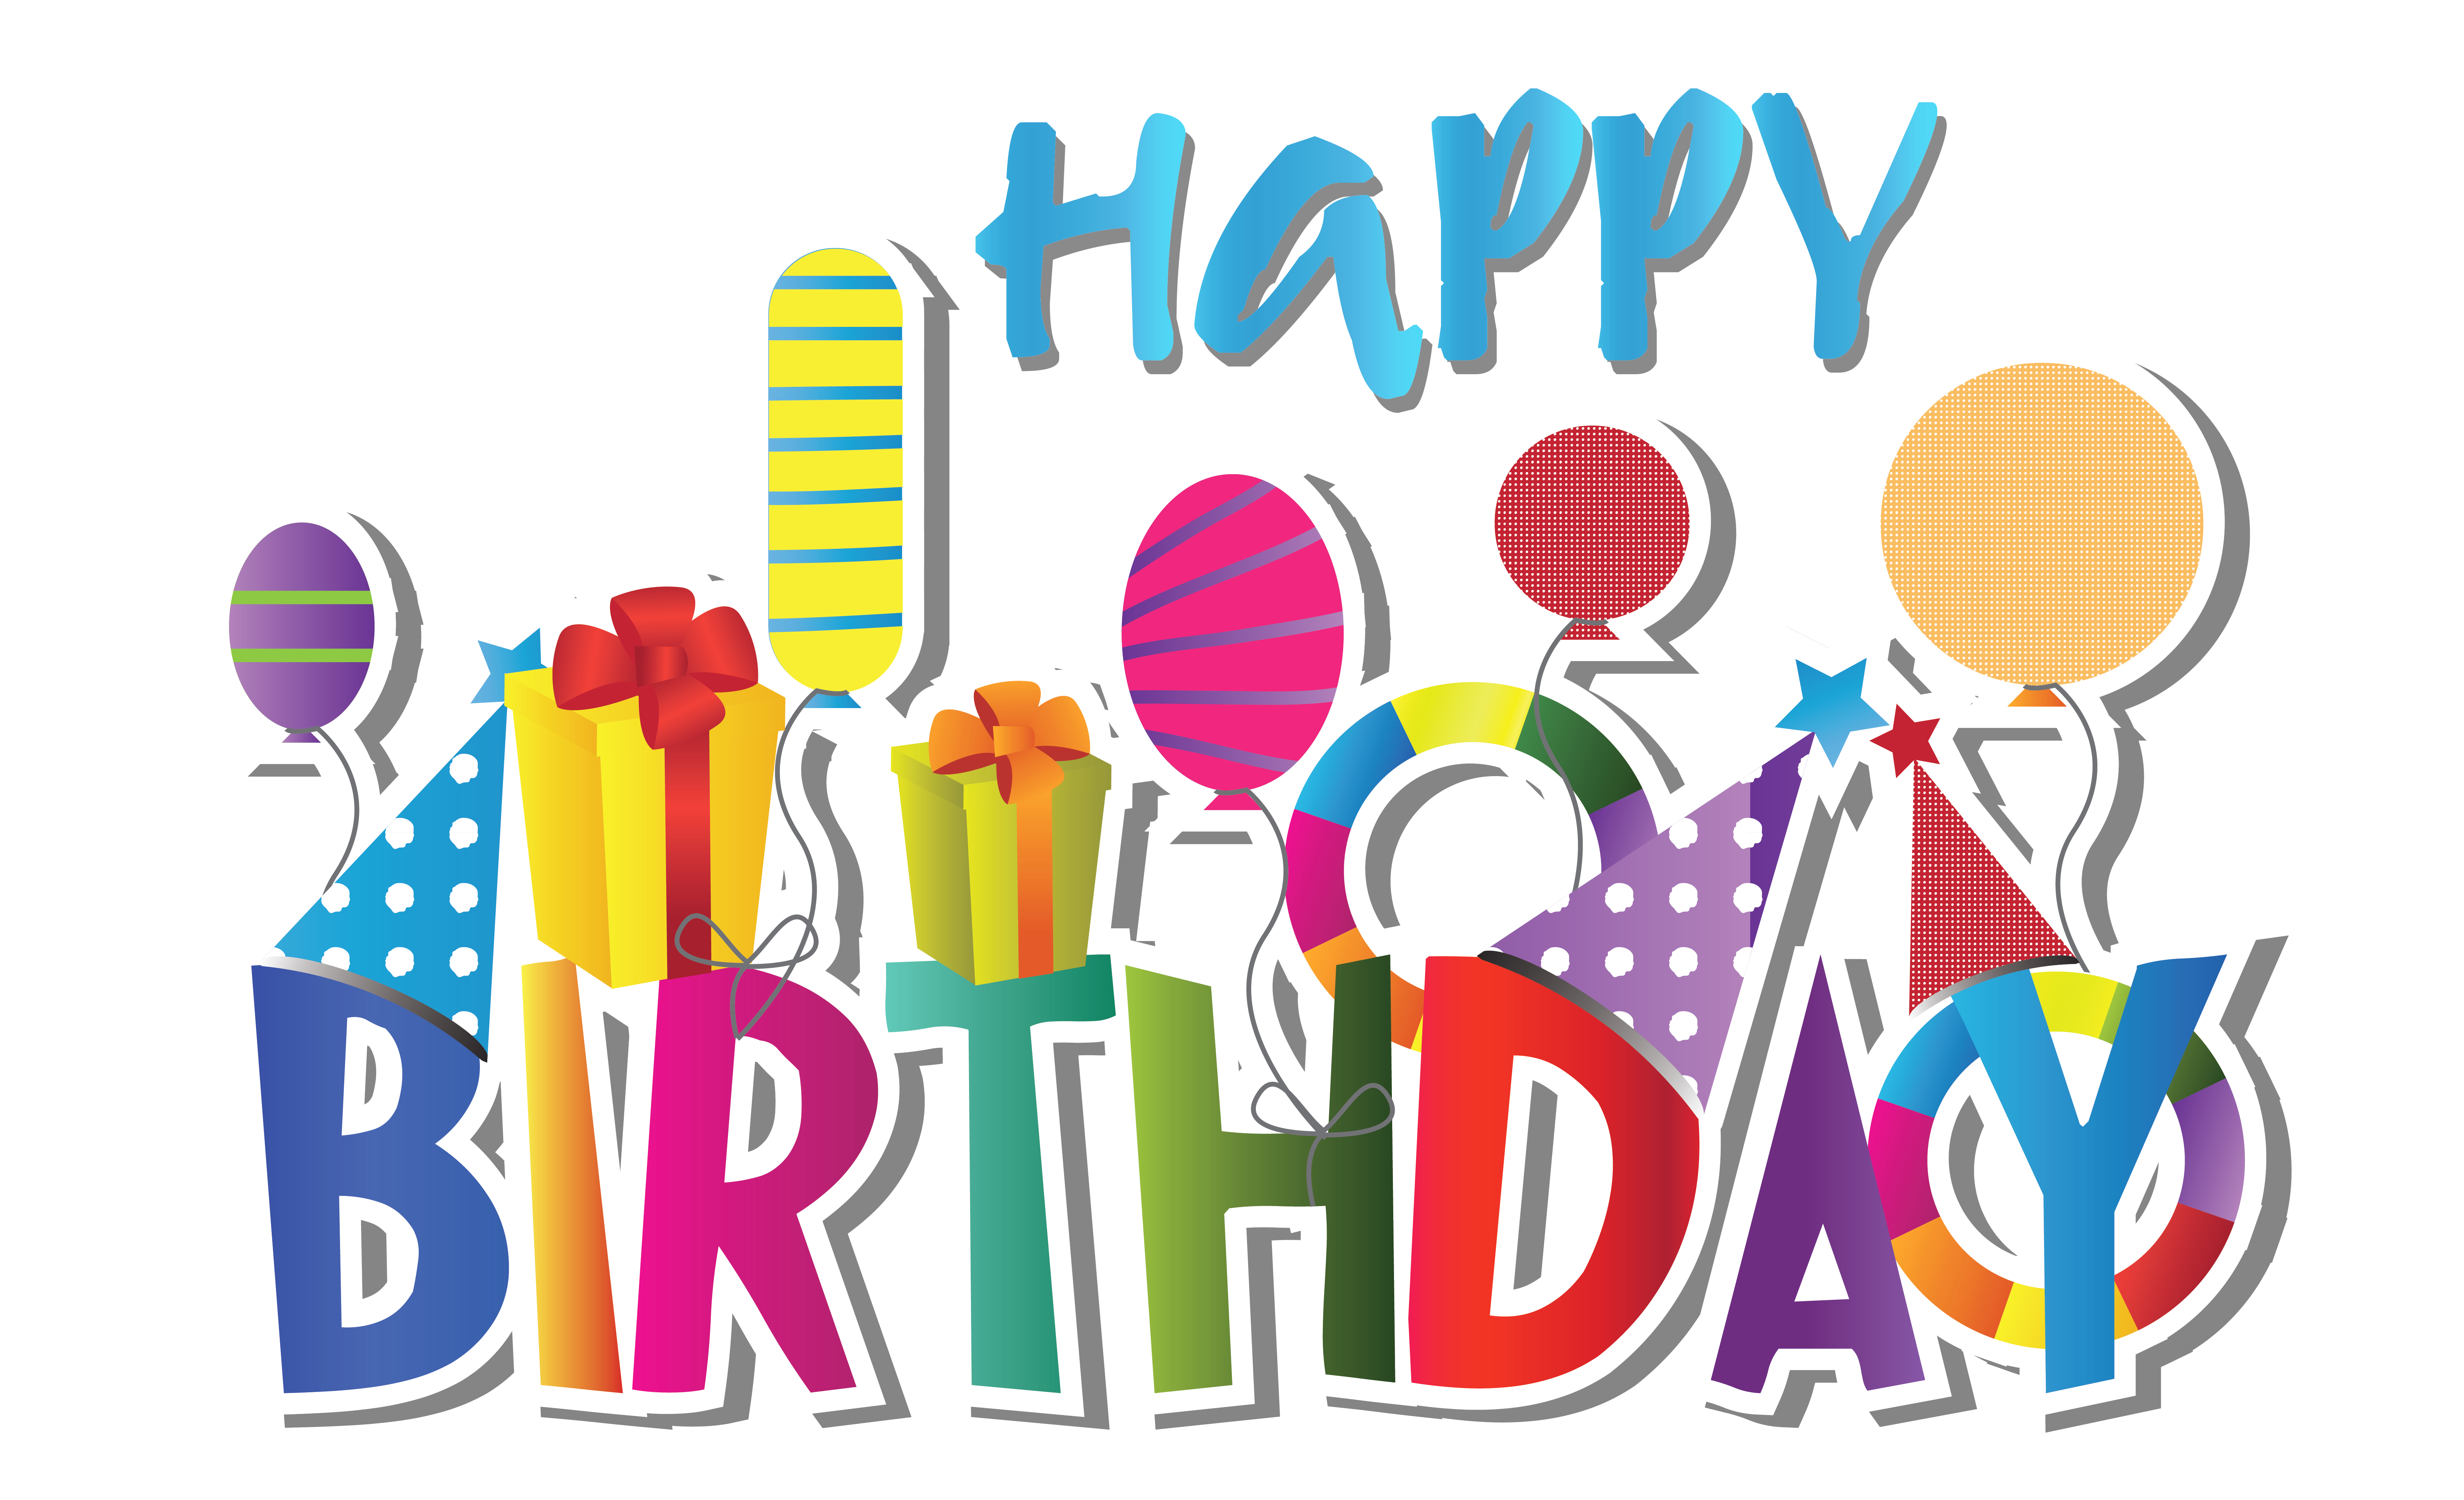 Birthday clipart images graphic black and white download Cute Happy Birthday Clipart | Gallery Yopriceville - High-Quality ... graphic black and white download